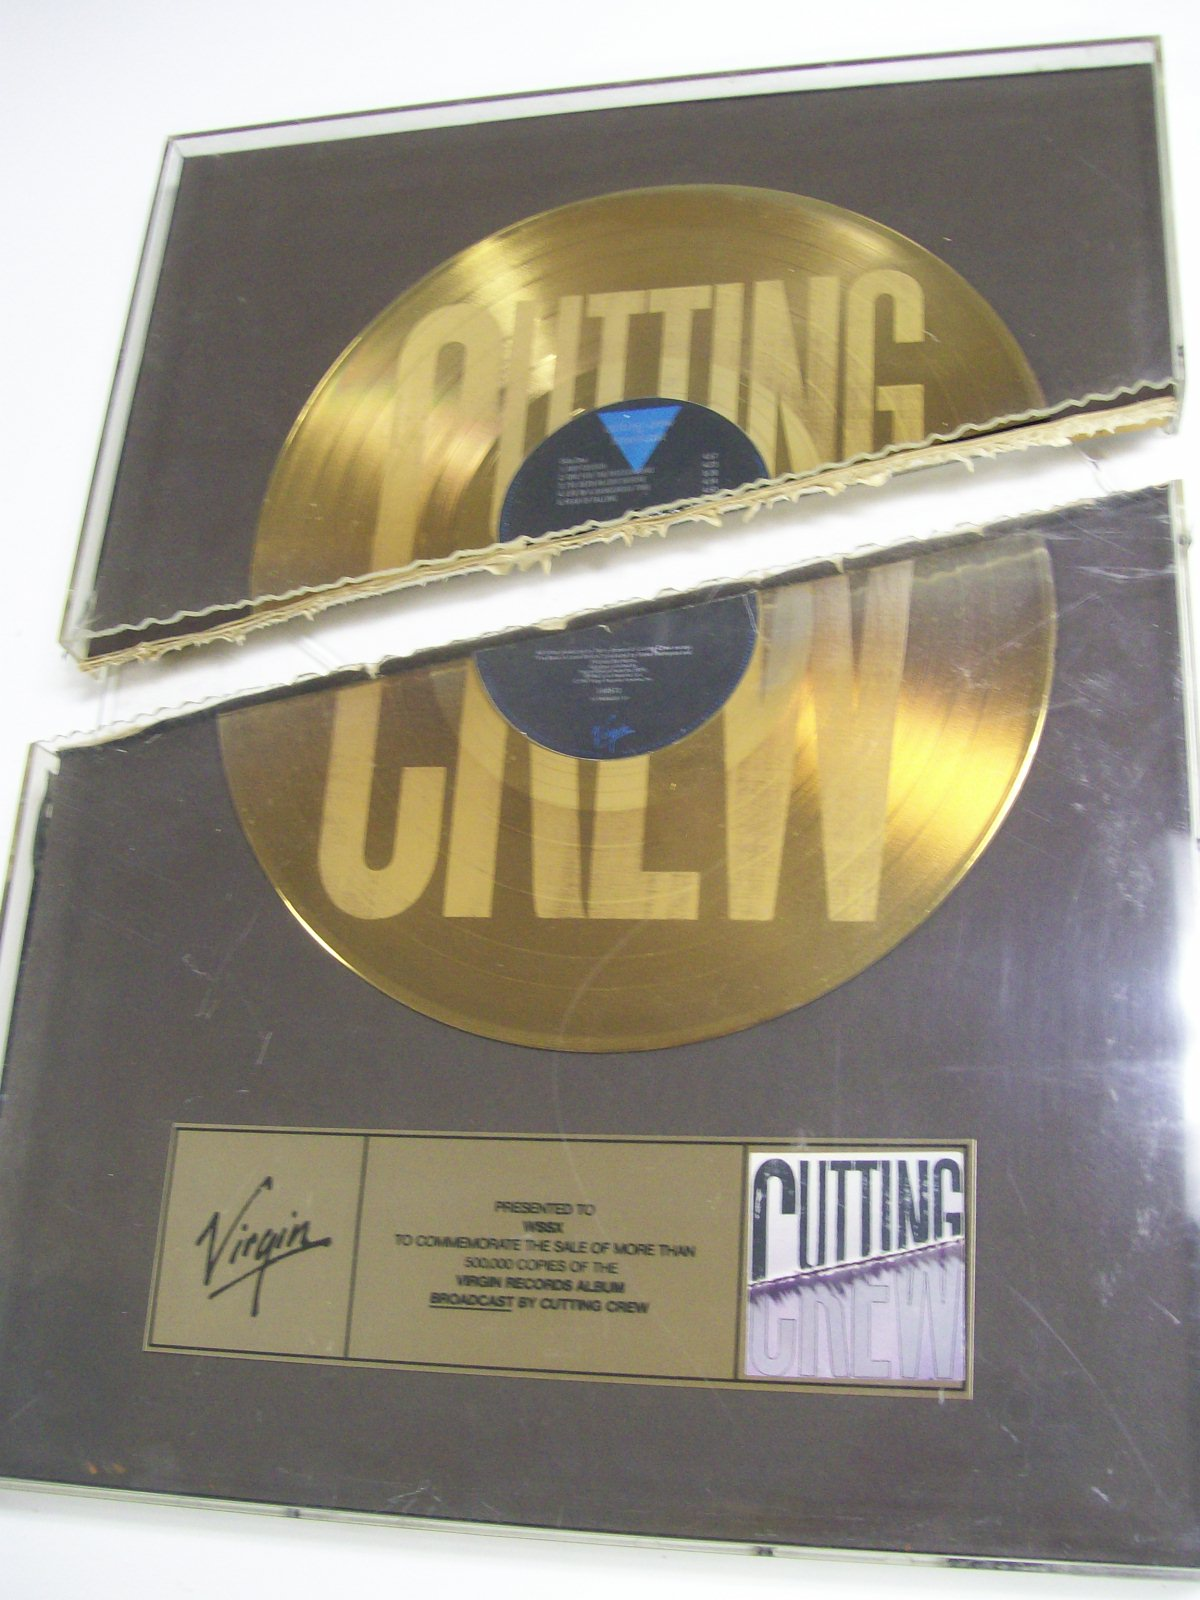 CUTTING CREW BROADCAST GOLD RECORD VIRGIN RECORDS